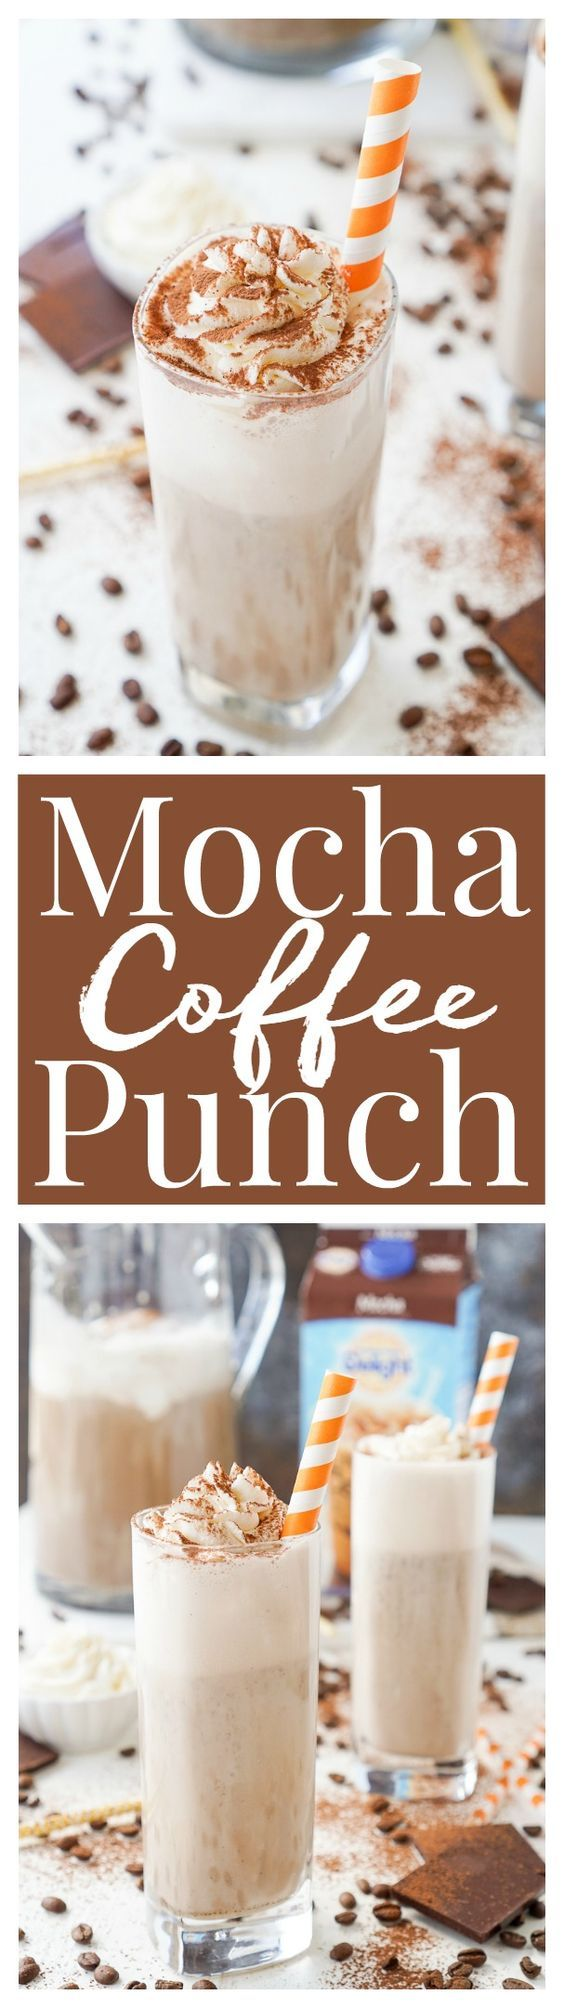 This Mocha Coffee Punch is bound to be a new party favorite by hosts and guests alike! It's easy to make and tastes amazingly creamy and delicious! Made with mocha iced coffee, sugar, milk, and vanilla ice cream, you'll love the fresh new take on the traditional party punch! #idelight @indelight